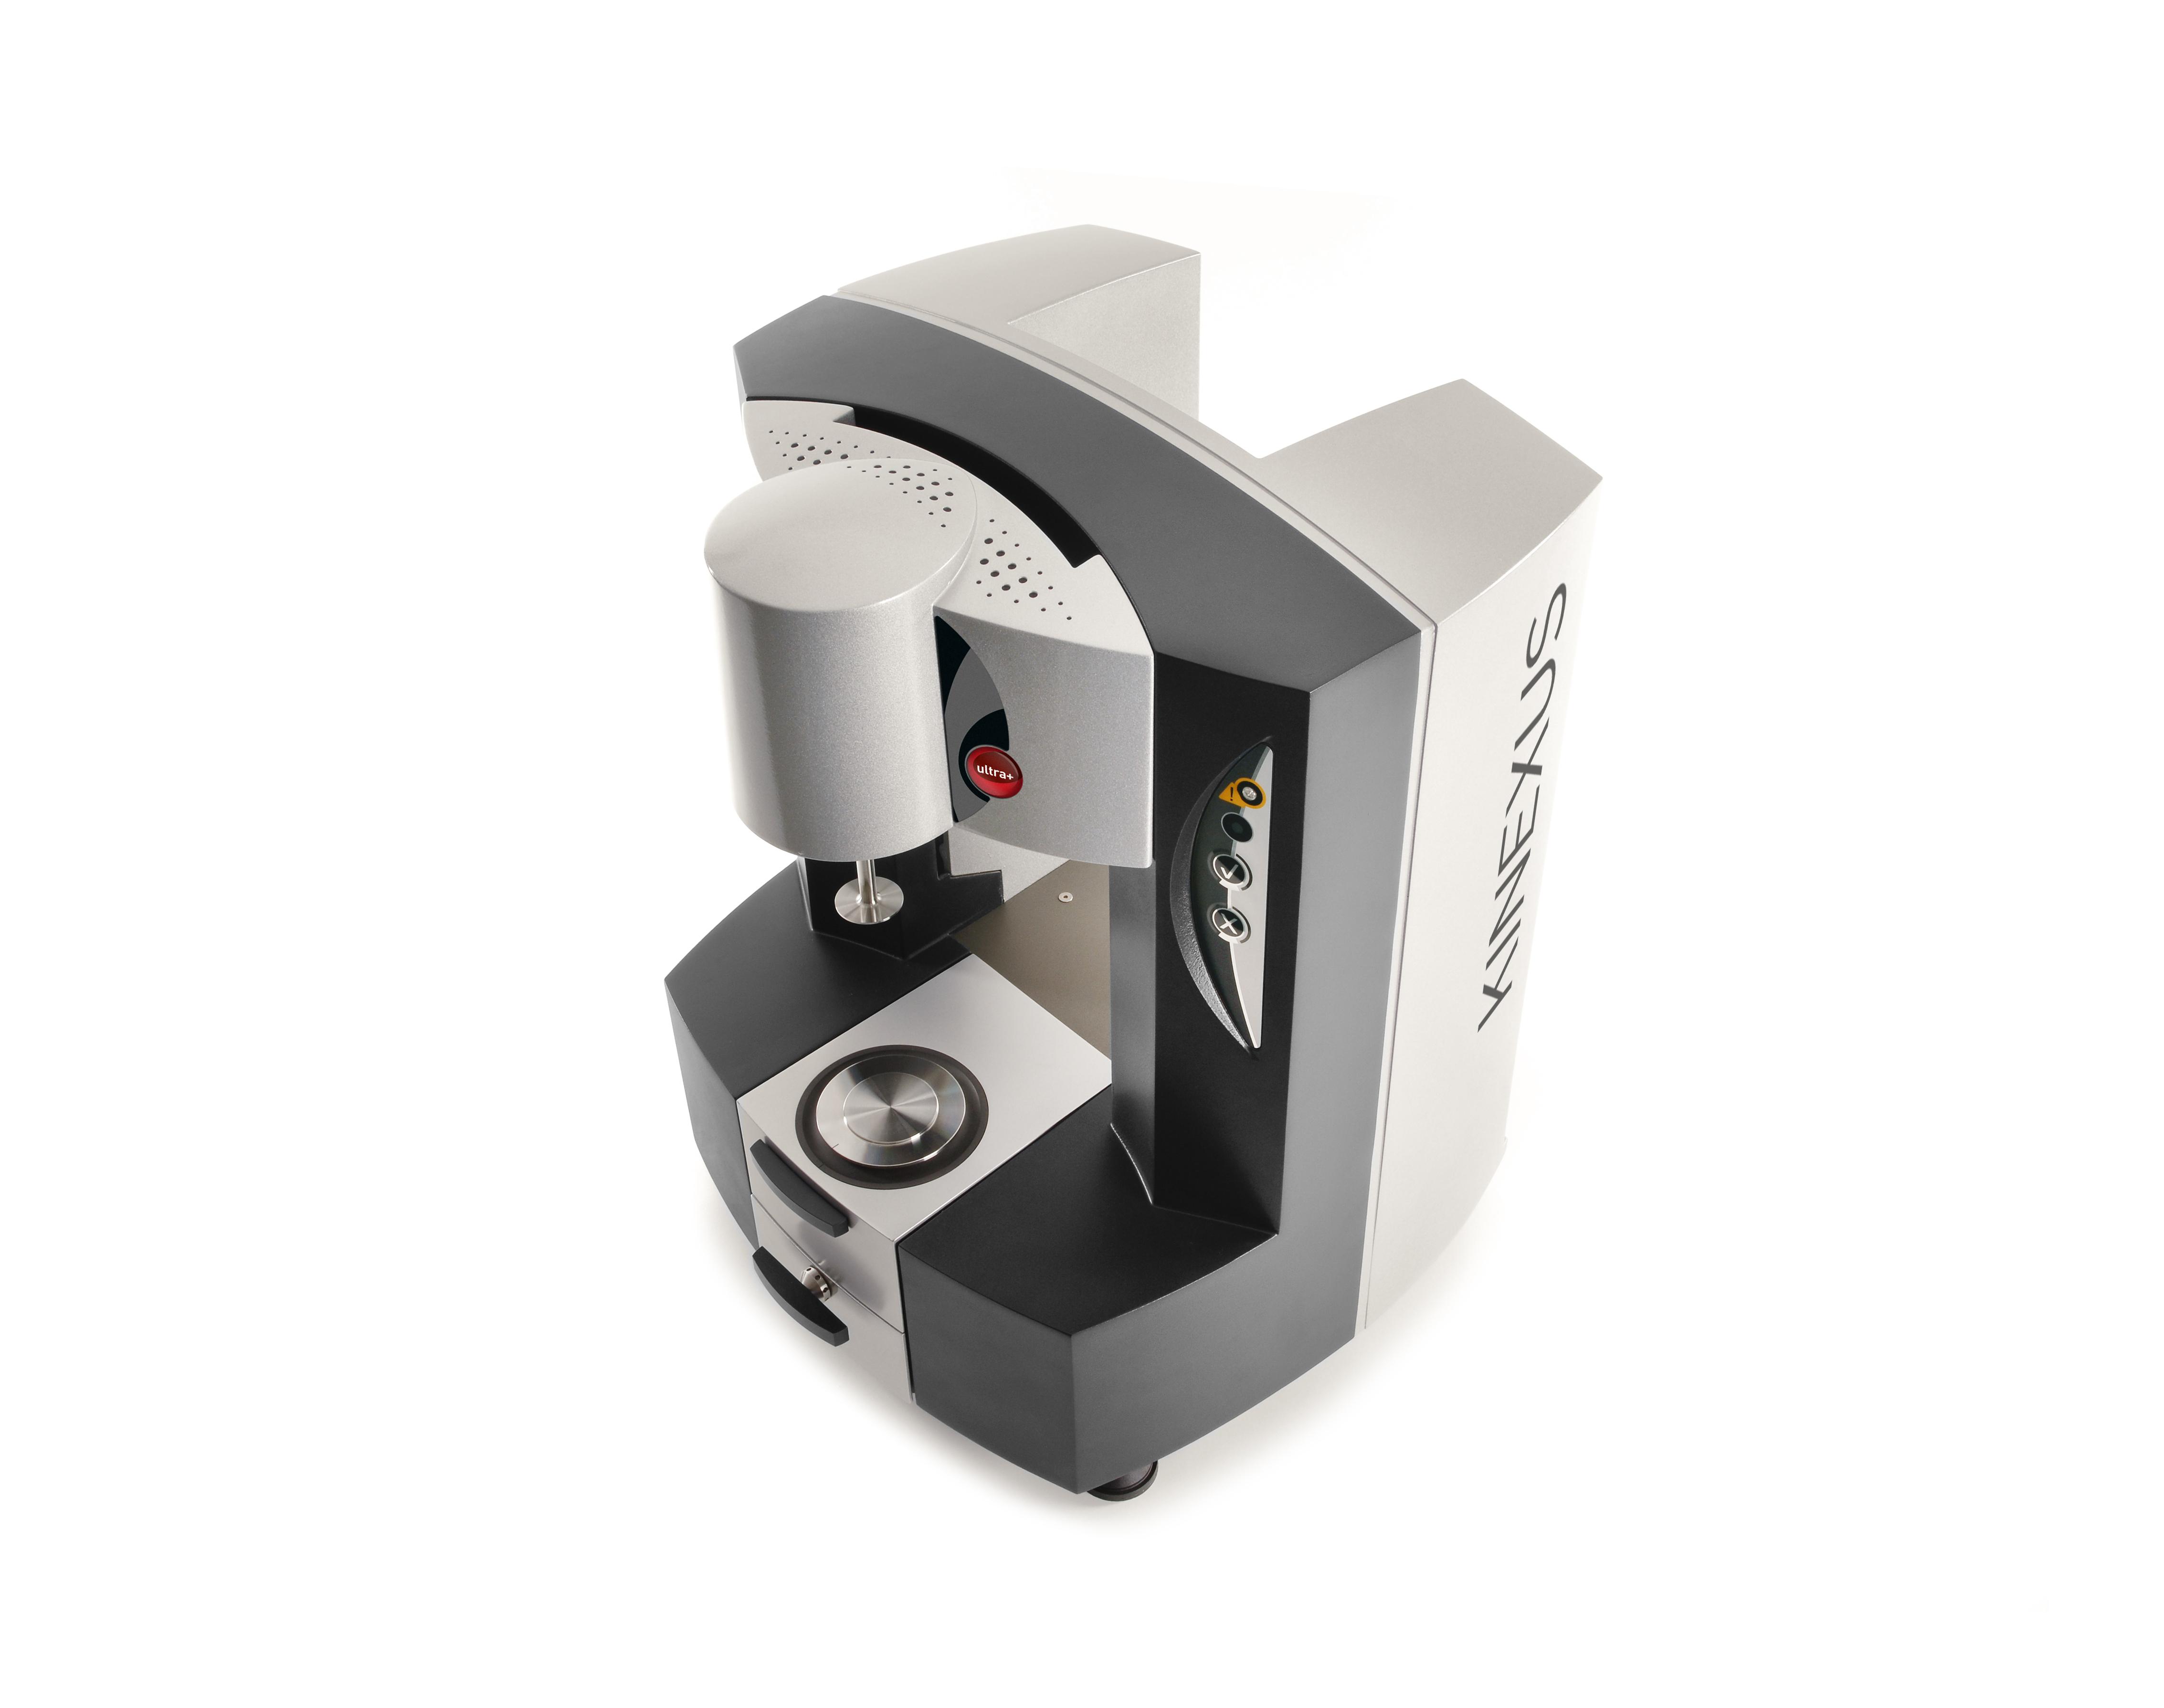 Kinexus - Next generation rheometer redefines ease of use